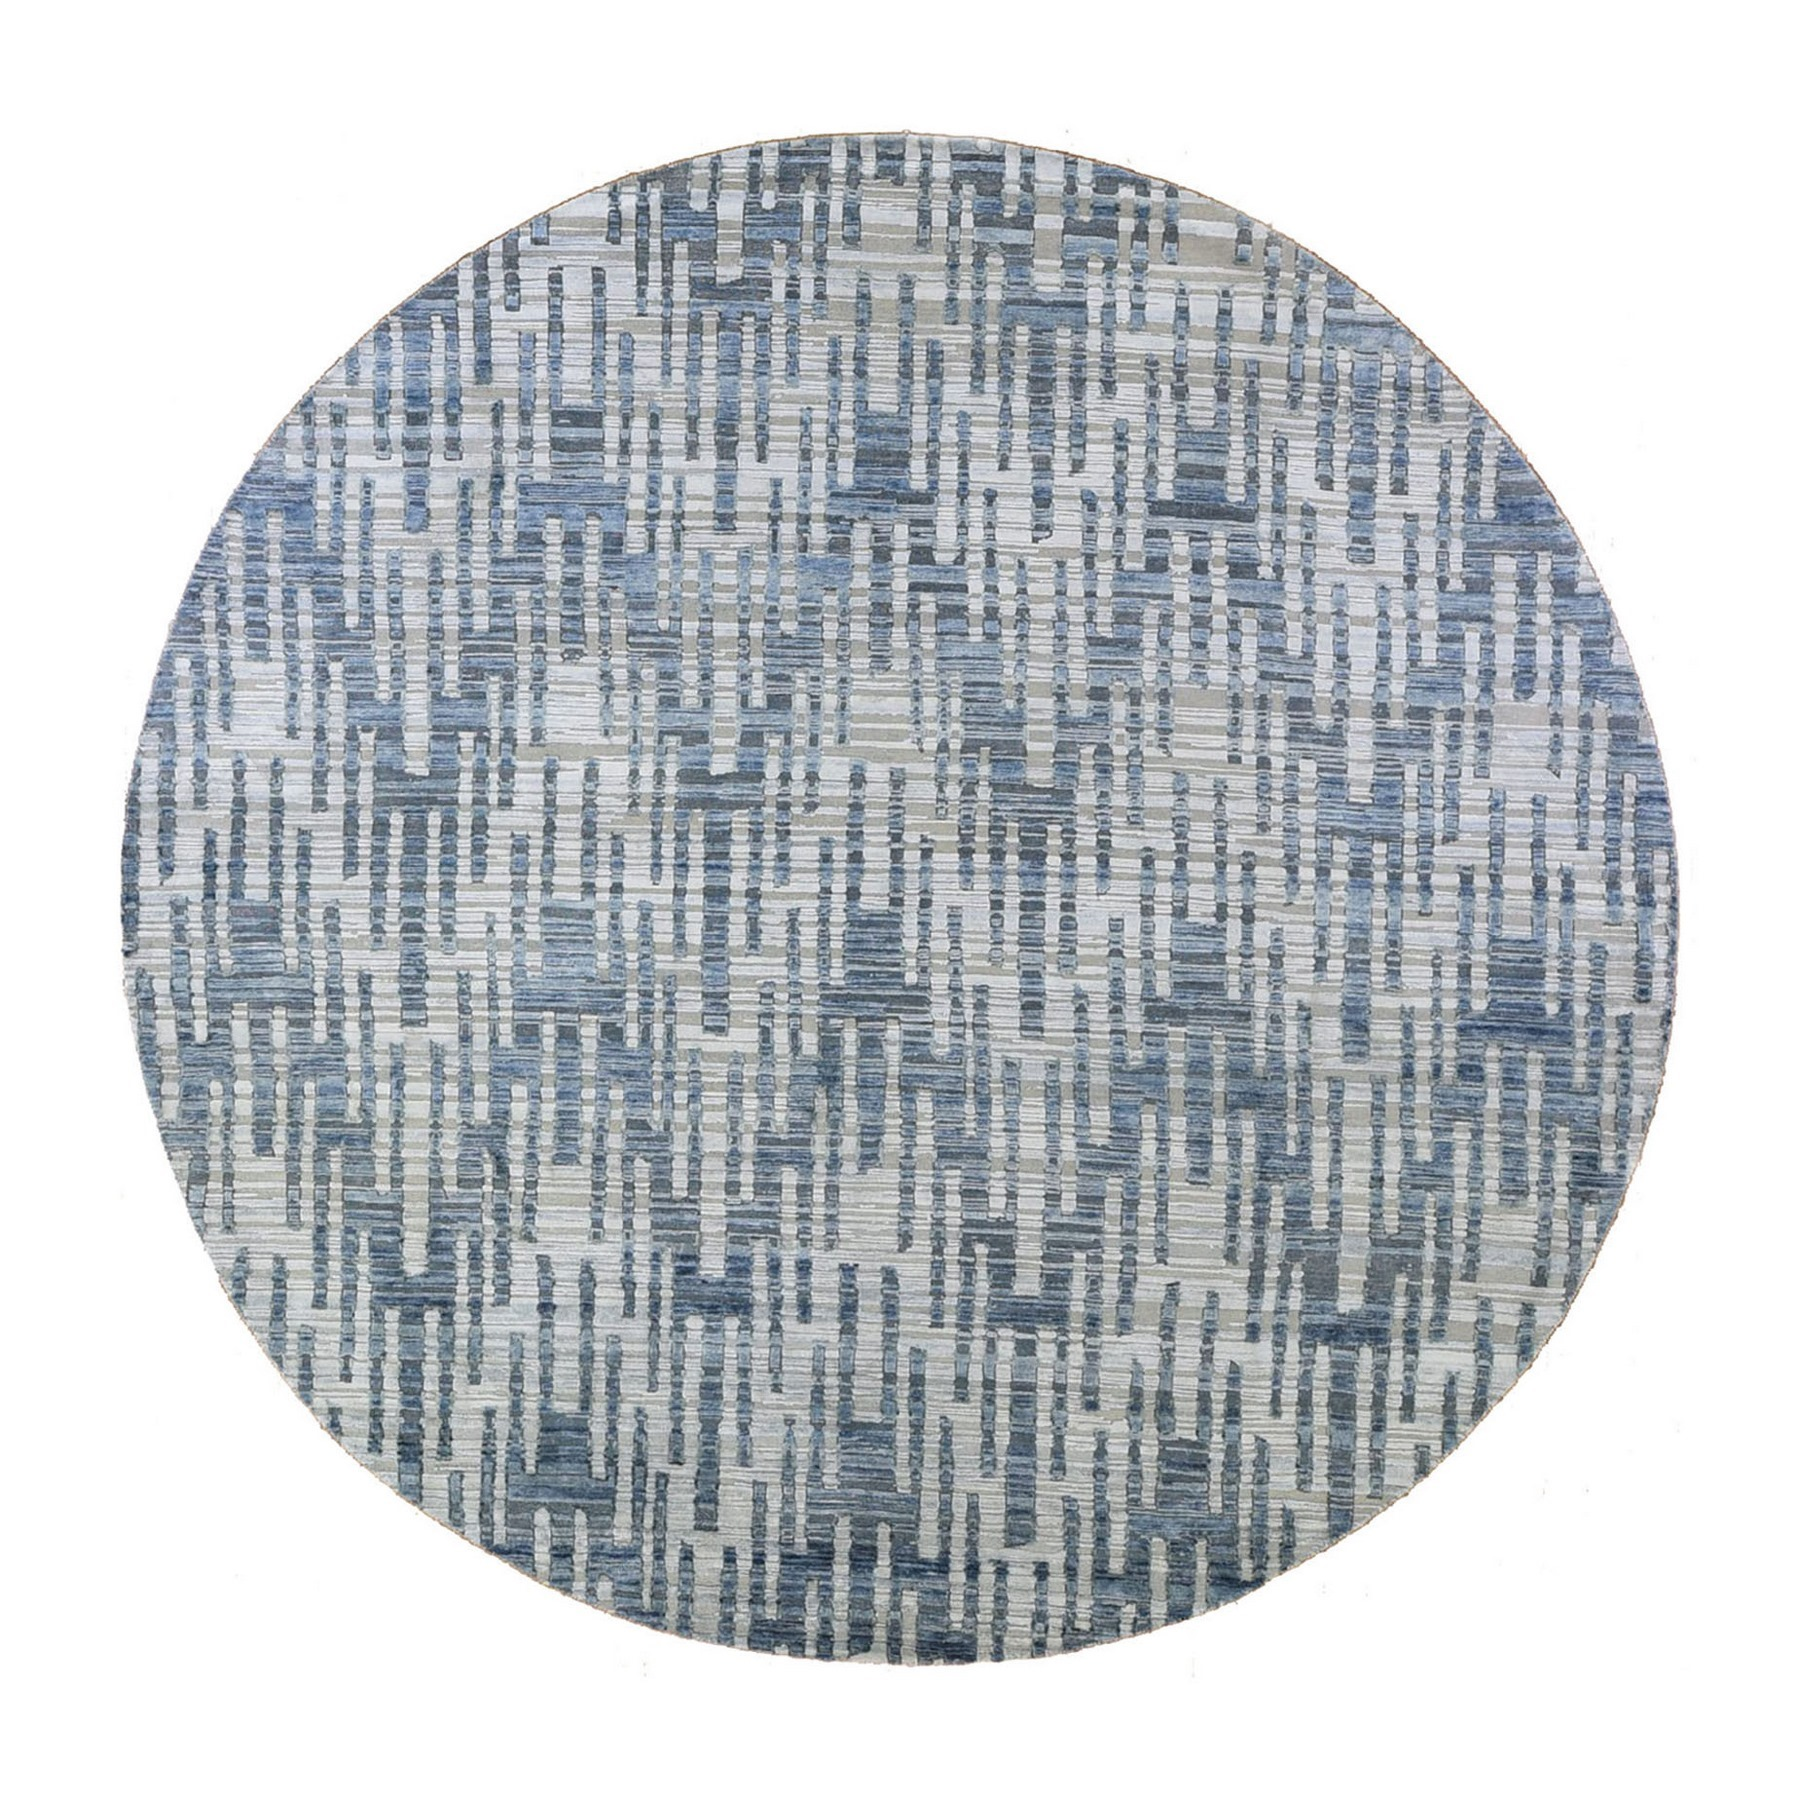 Modern & Contemporary Rugs LUV598185